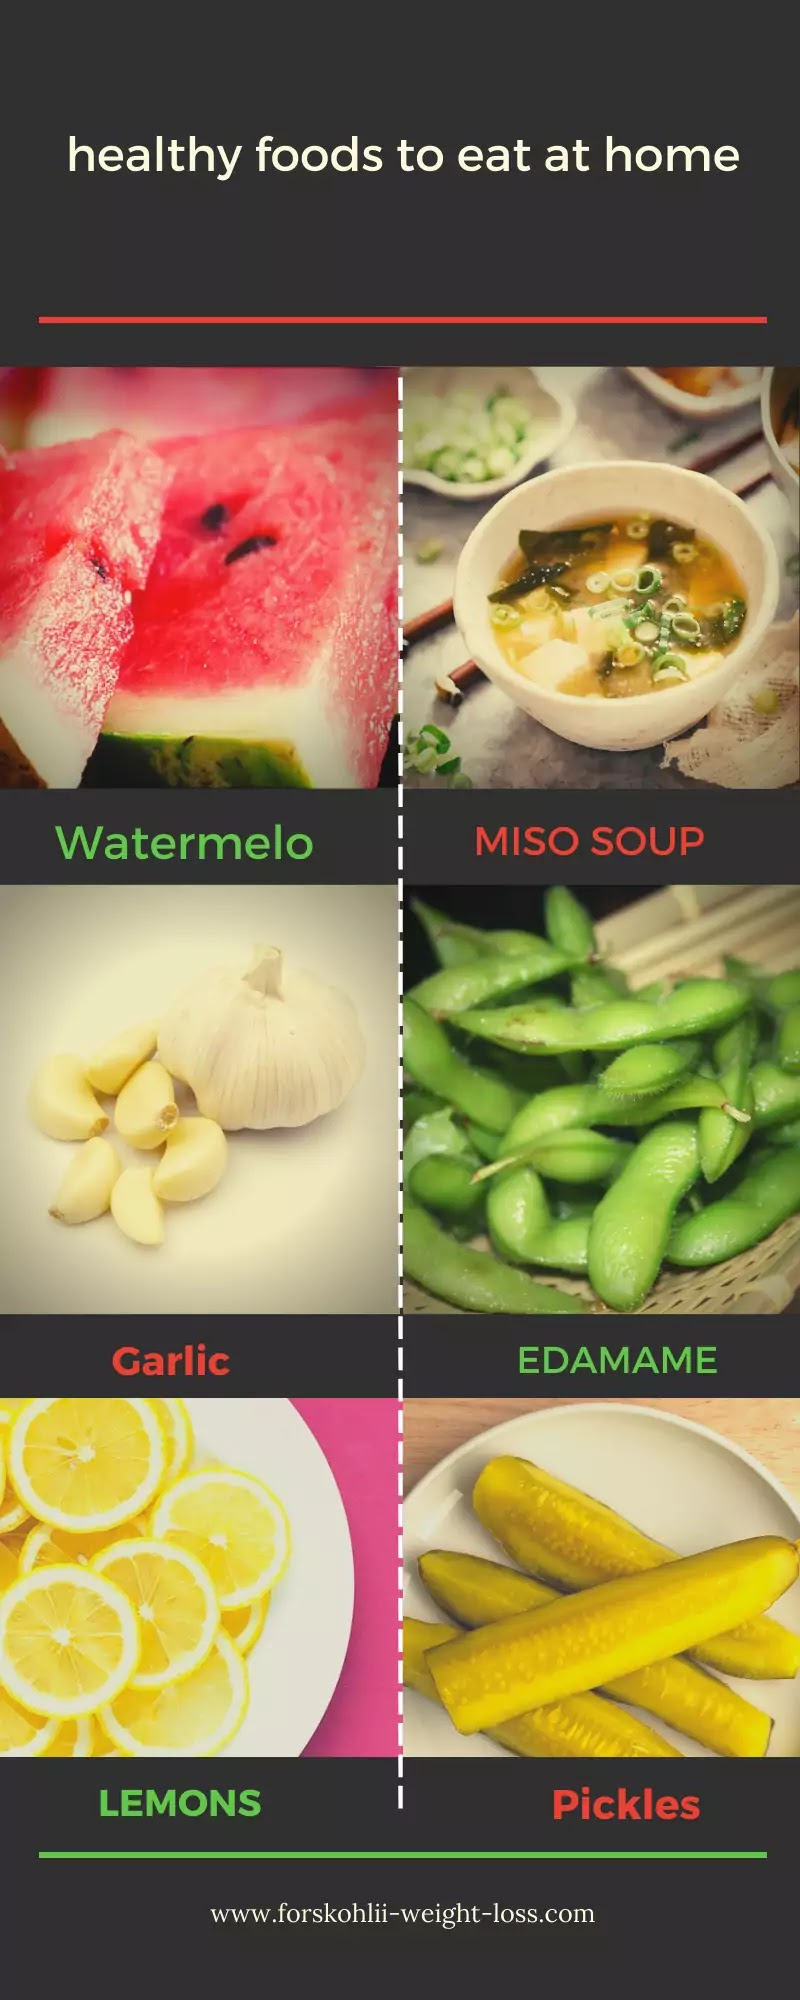 Healthy Foods To Eat at home